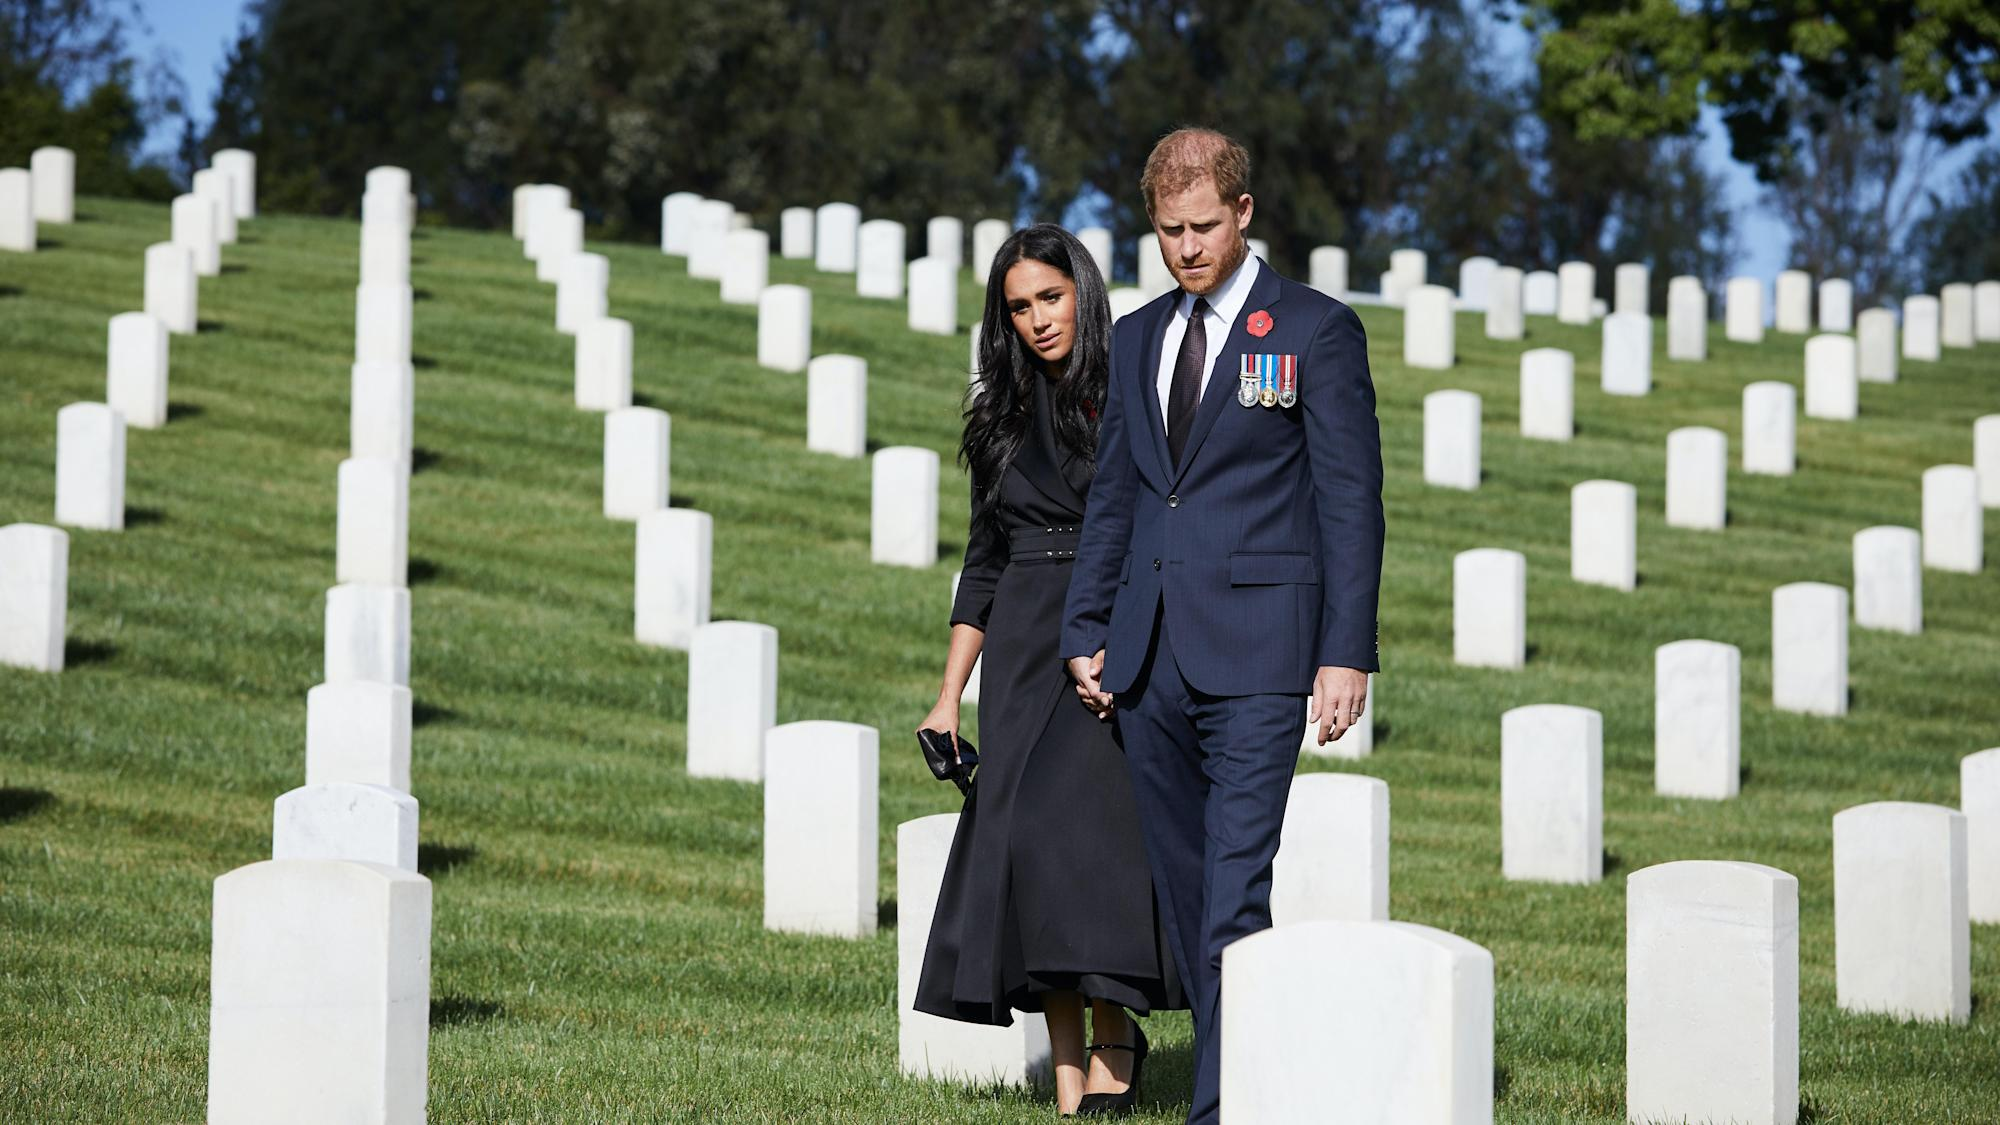 Harry and Meghan visit Los Angeles National Cemetery to mark Remembrance Sunday